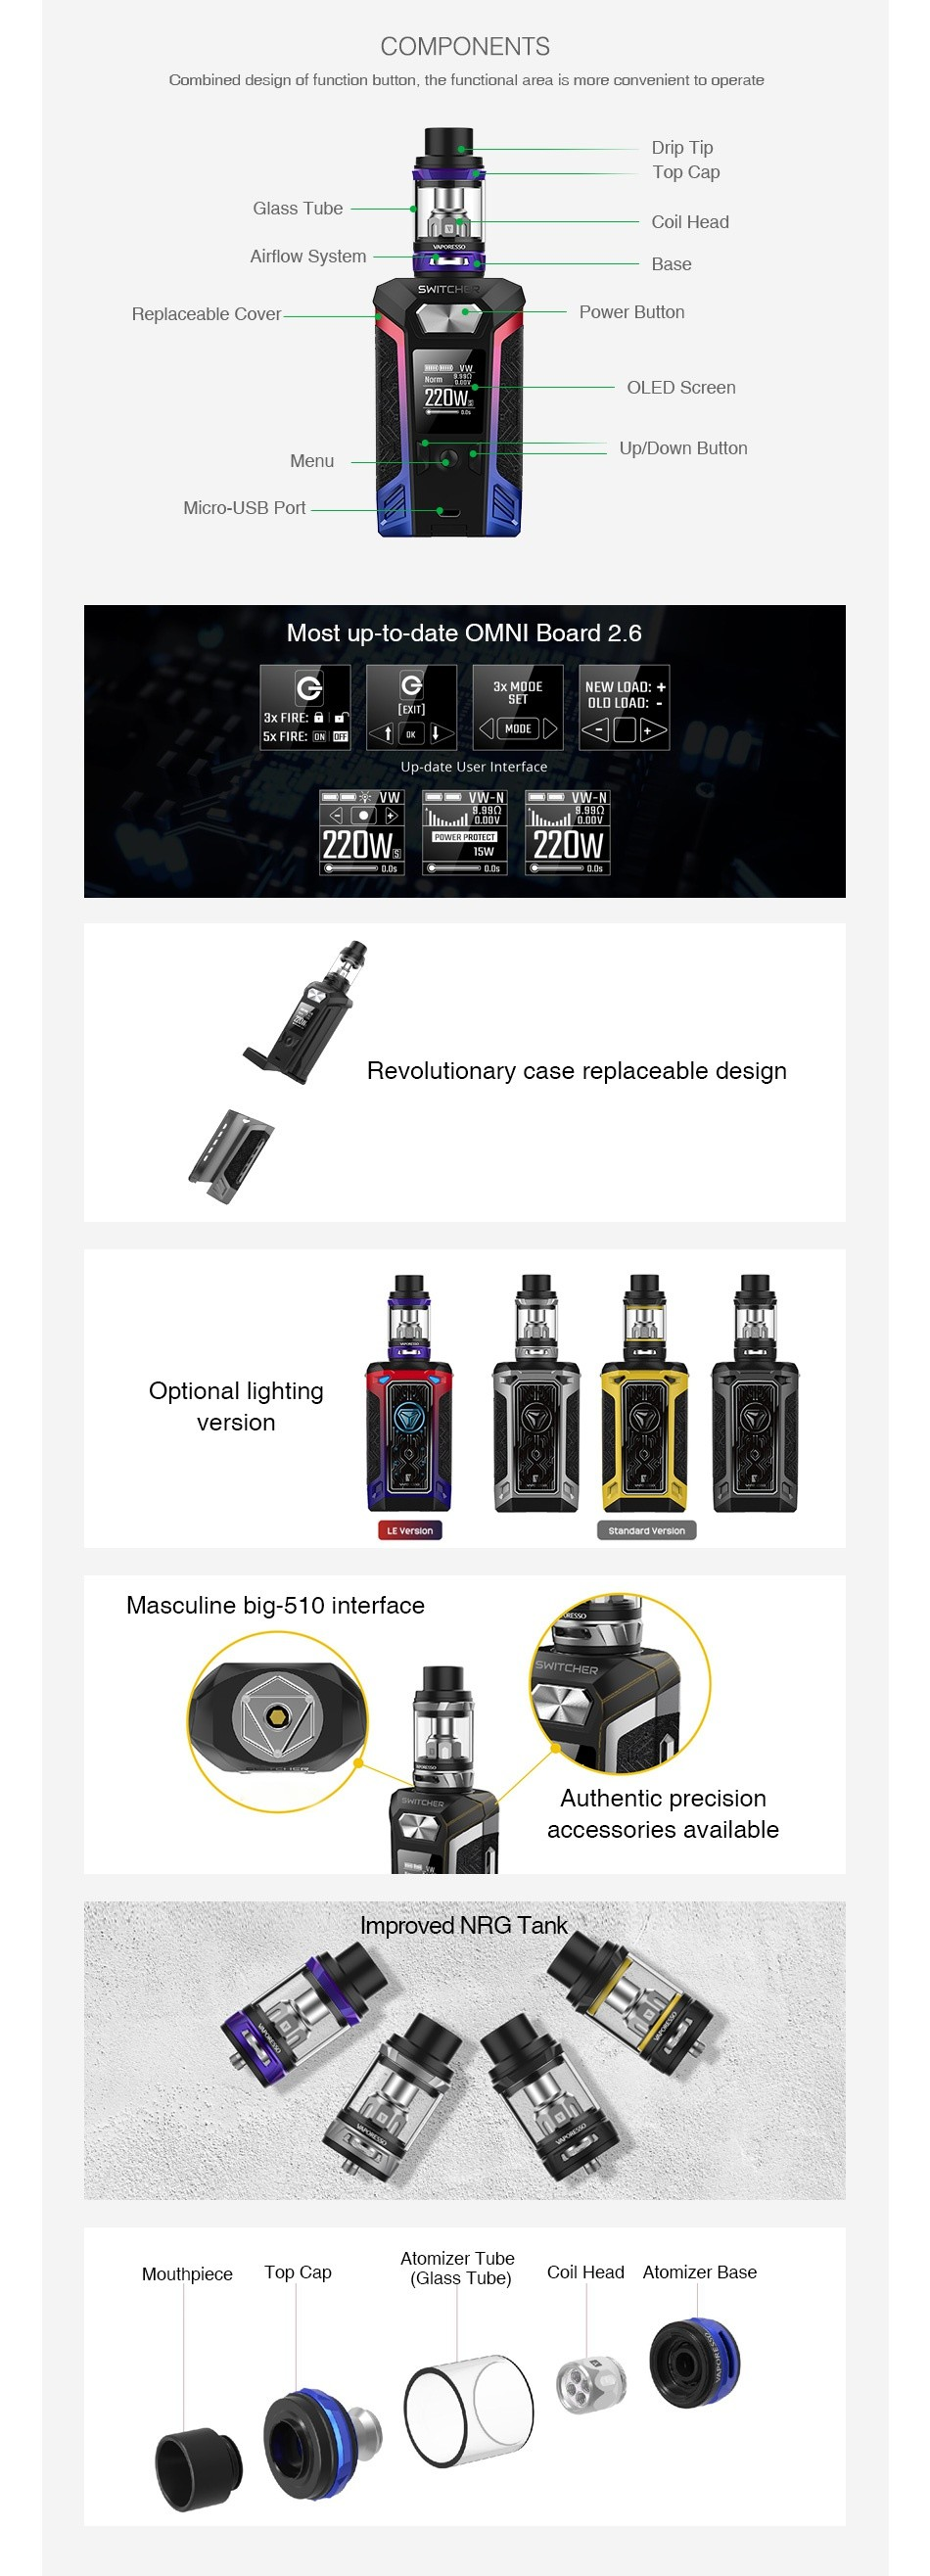 Vaporesso Switcher 220W with NRG TC Kit COMPONENTS Combined design of function button  the functional a rea is more convenient to operate Drip lIp Top Cap lass Tube Coil Head Airflow System Replaceable Cove Power Billor 20V Menu Up Down Button Micro USB Port Most up to date OMNI Board 2 6 G 220Ws D7 5w Revolutionary case replaceable design Optional lighting version   standerd Masculine big 510 interface Authentic precision accessories available Improved NRG Tank Atomizer Tube Top Cap Coil Head Atomizer base